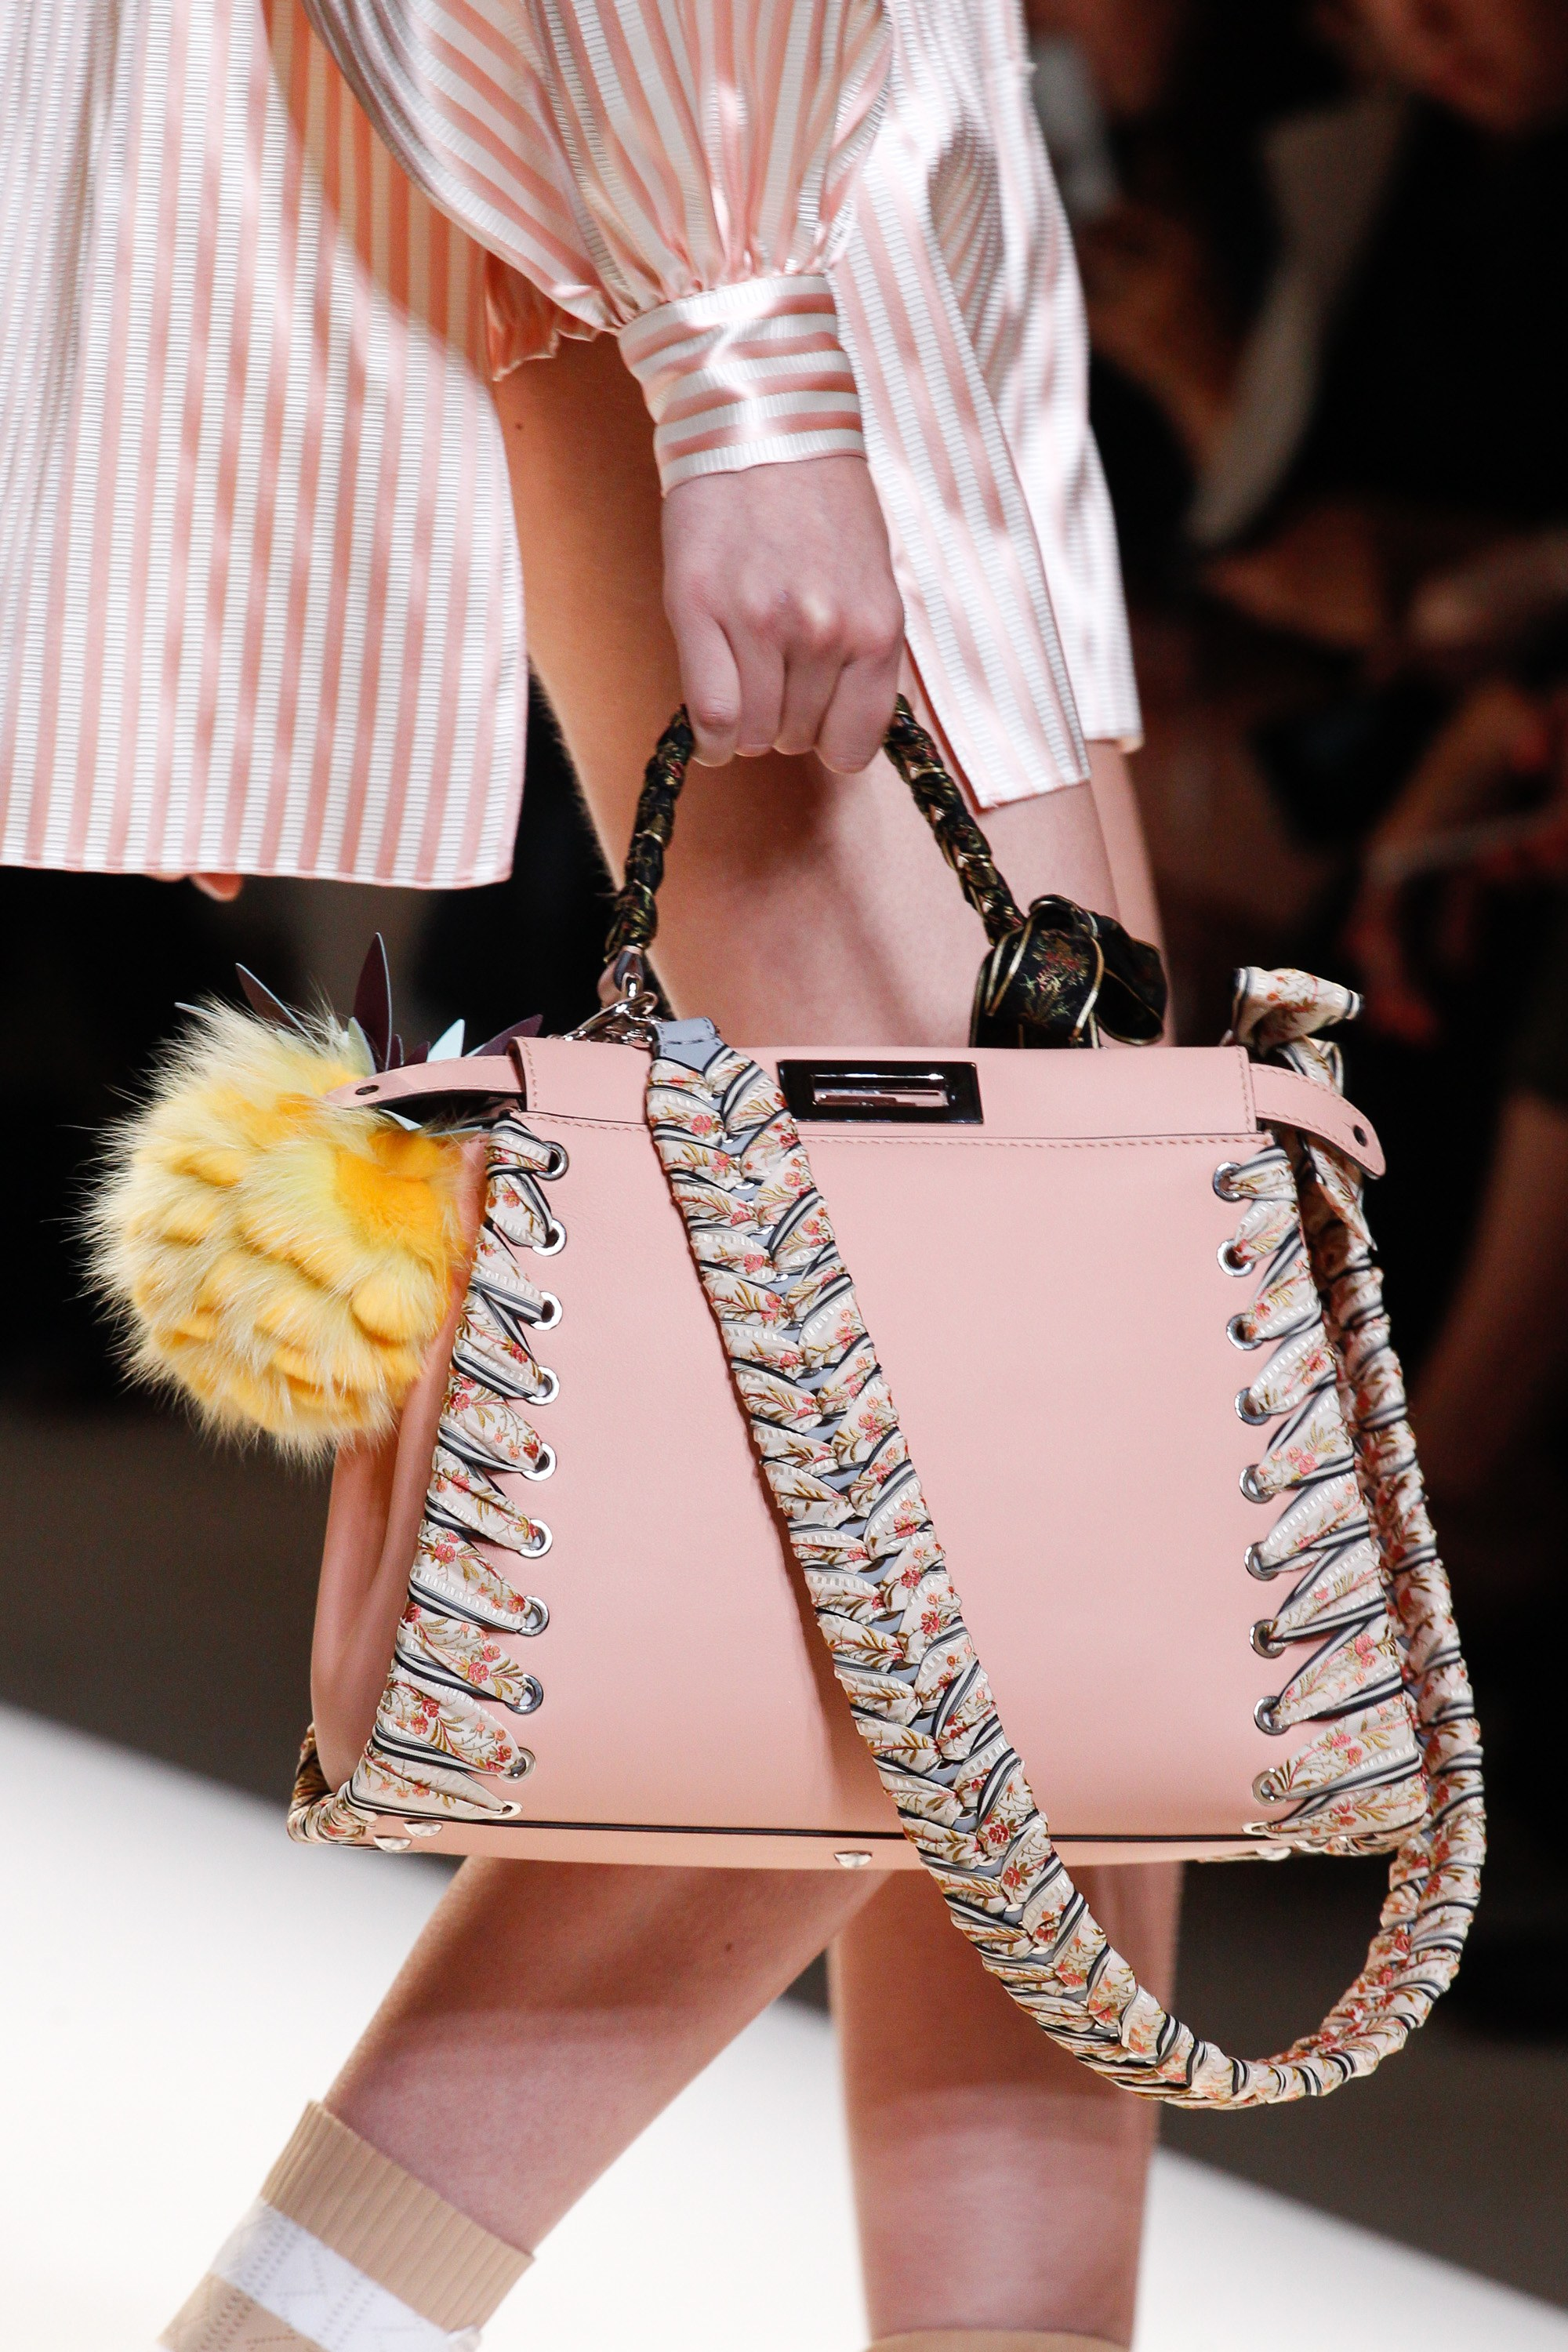 Fendi spring summer 2015 runway bag collection spotted fashion - Fendi Pink Whipstitch Peekaboo Bag Spring 2017